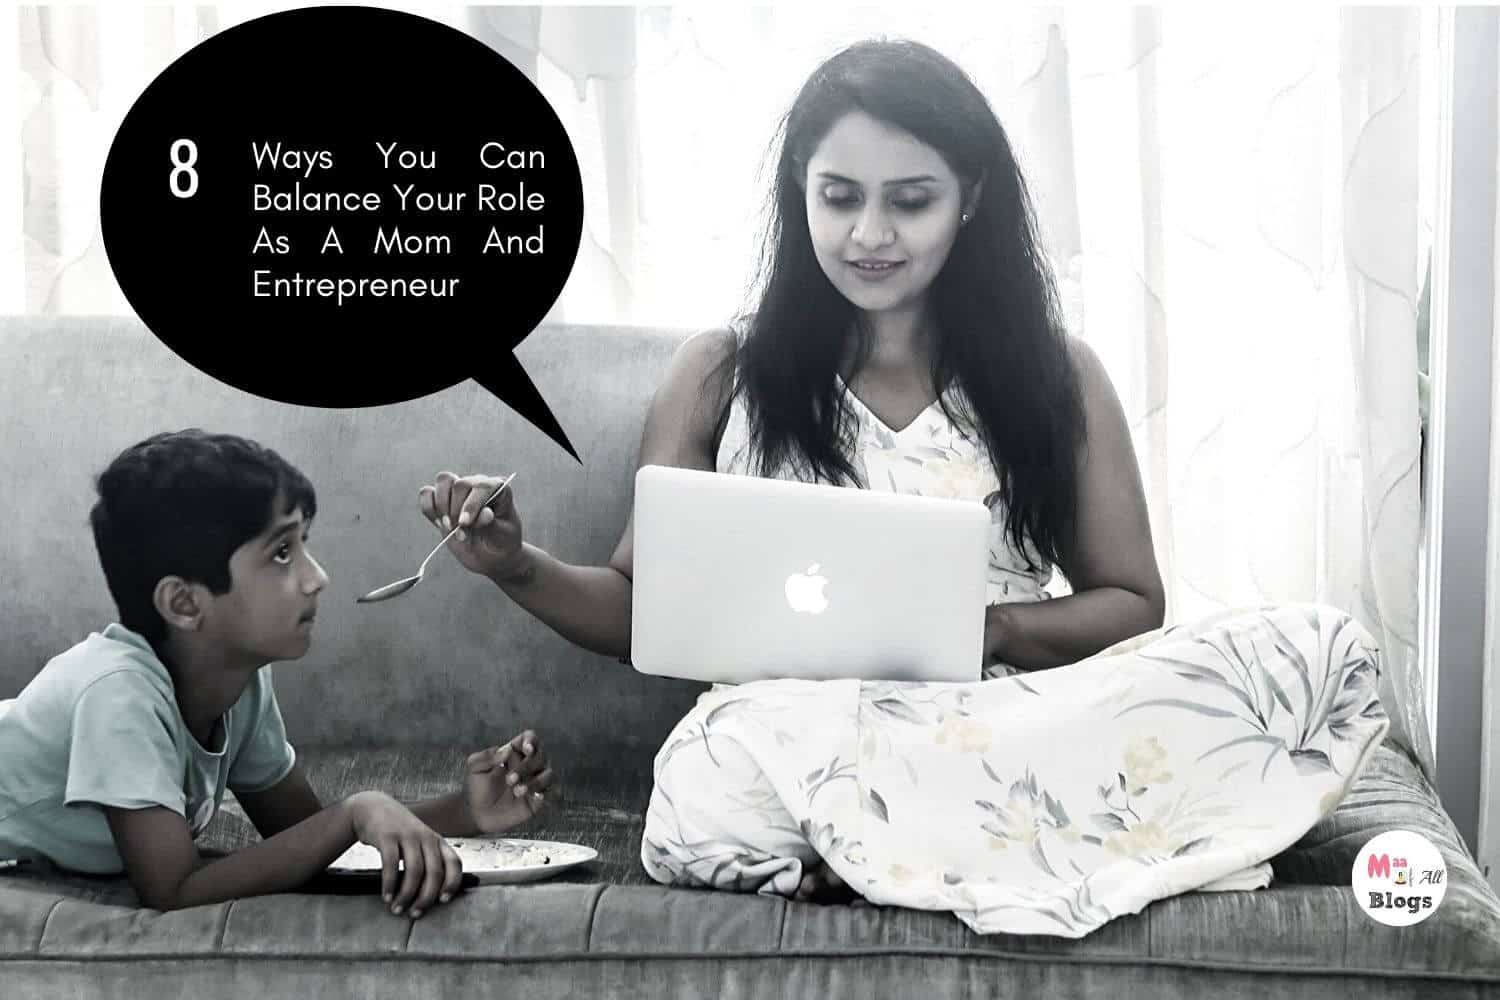 8 Ways You Can Balance Your Role As A Mompreneur